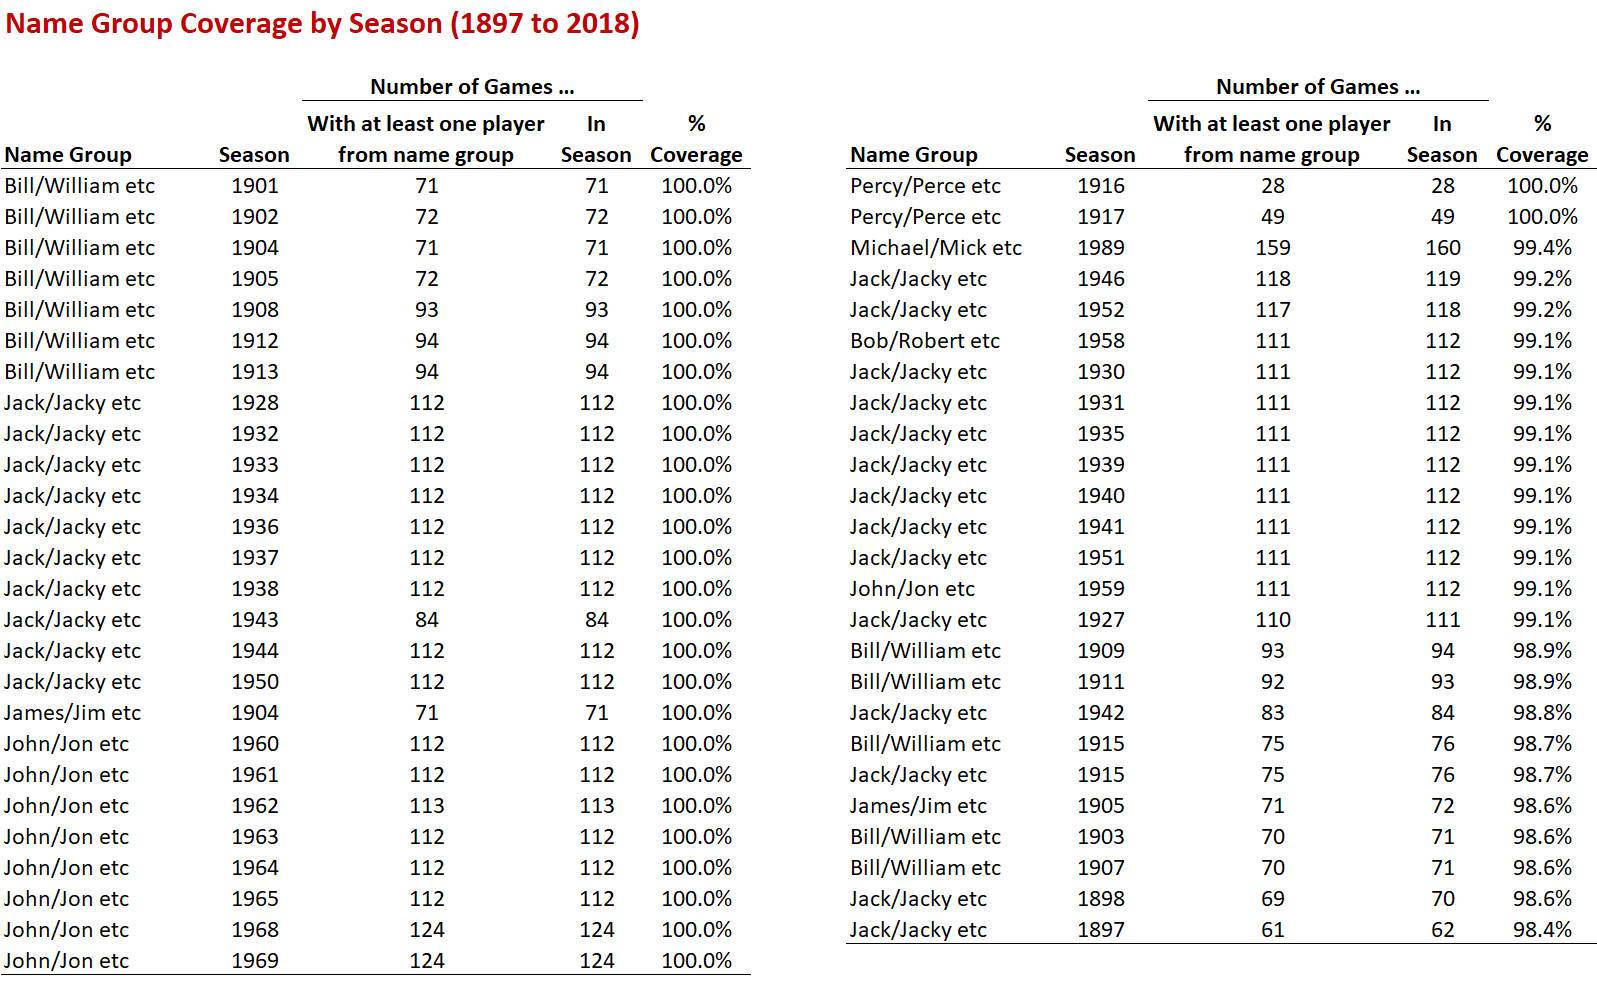 Name Group Coverage by Season.png